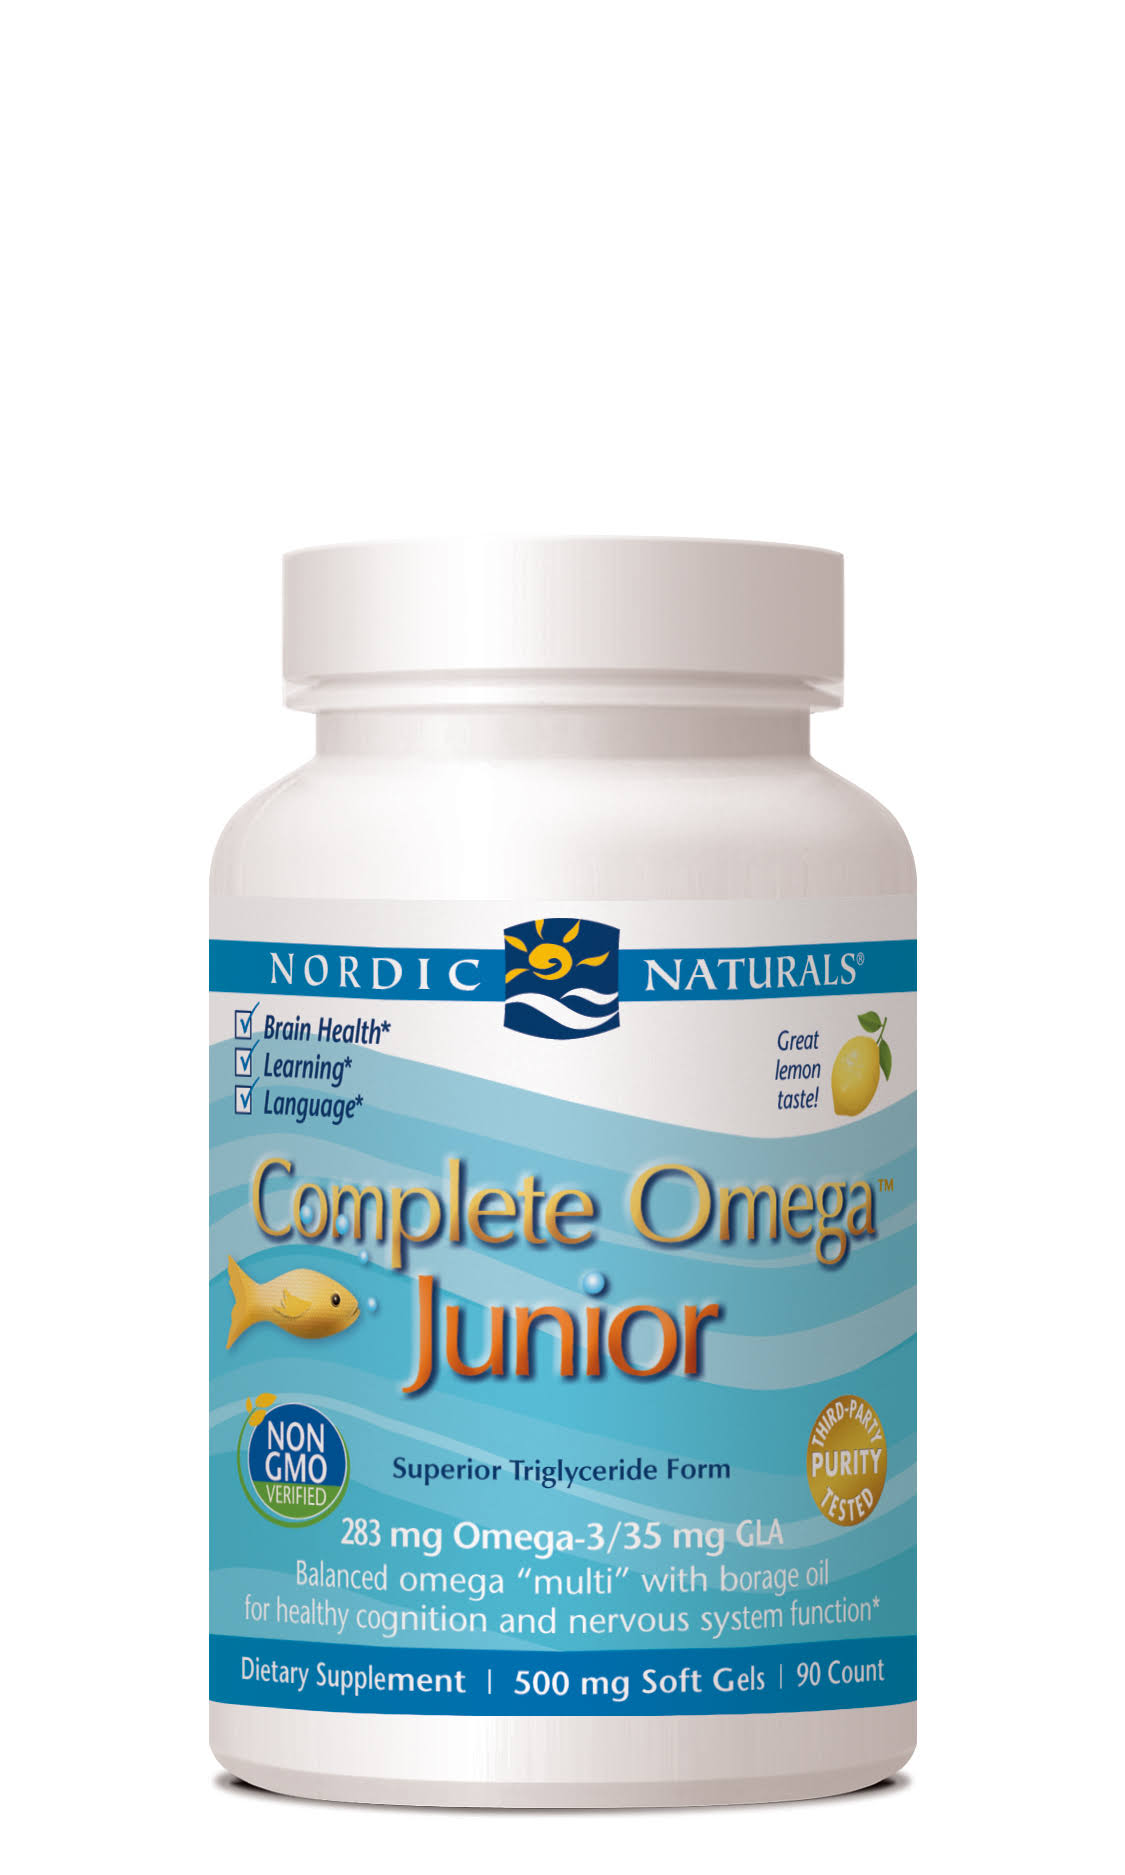 Nordic Naturals Complete Omega Junior - Lemon, 500mg, 90 Count